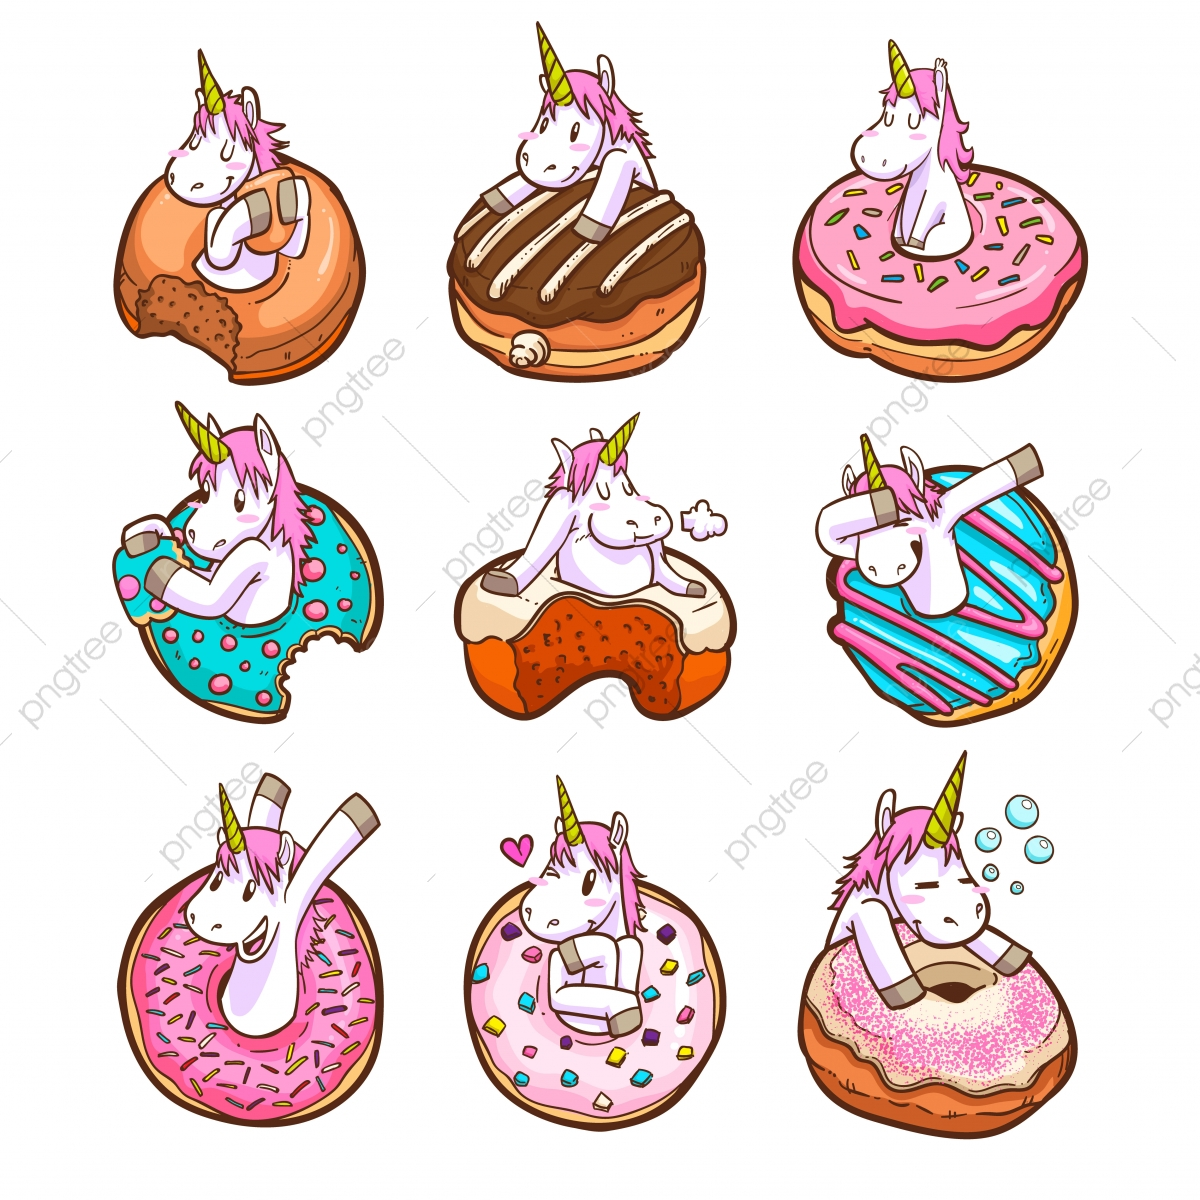 pngtree cute unicorn and donuts png image 4251938